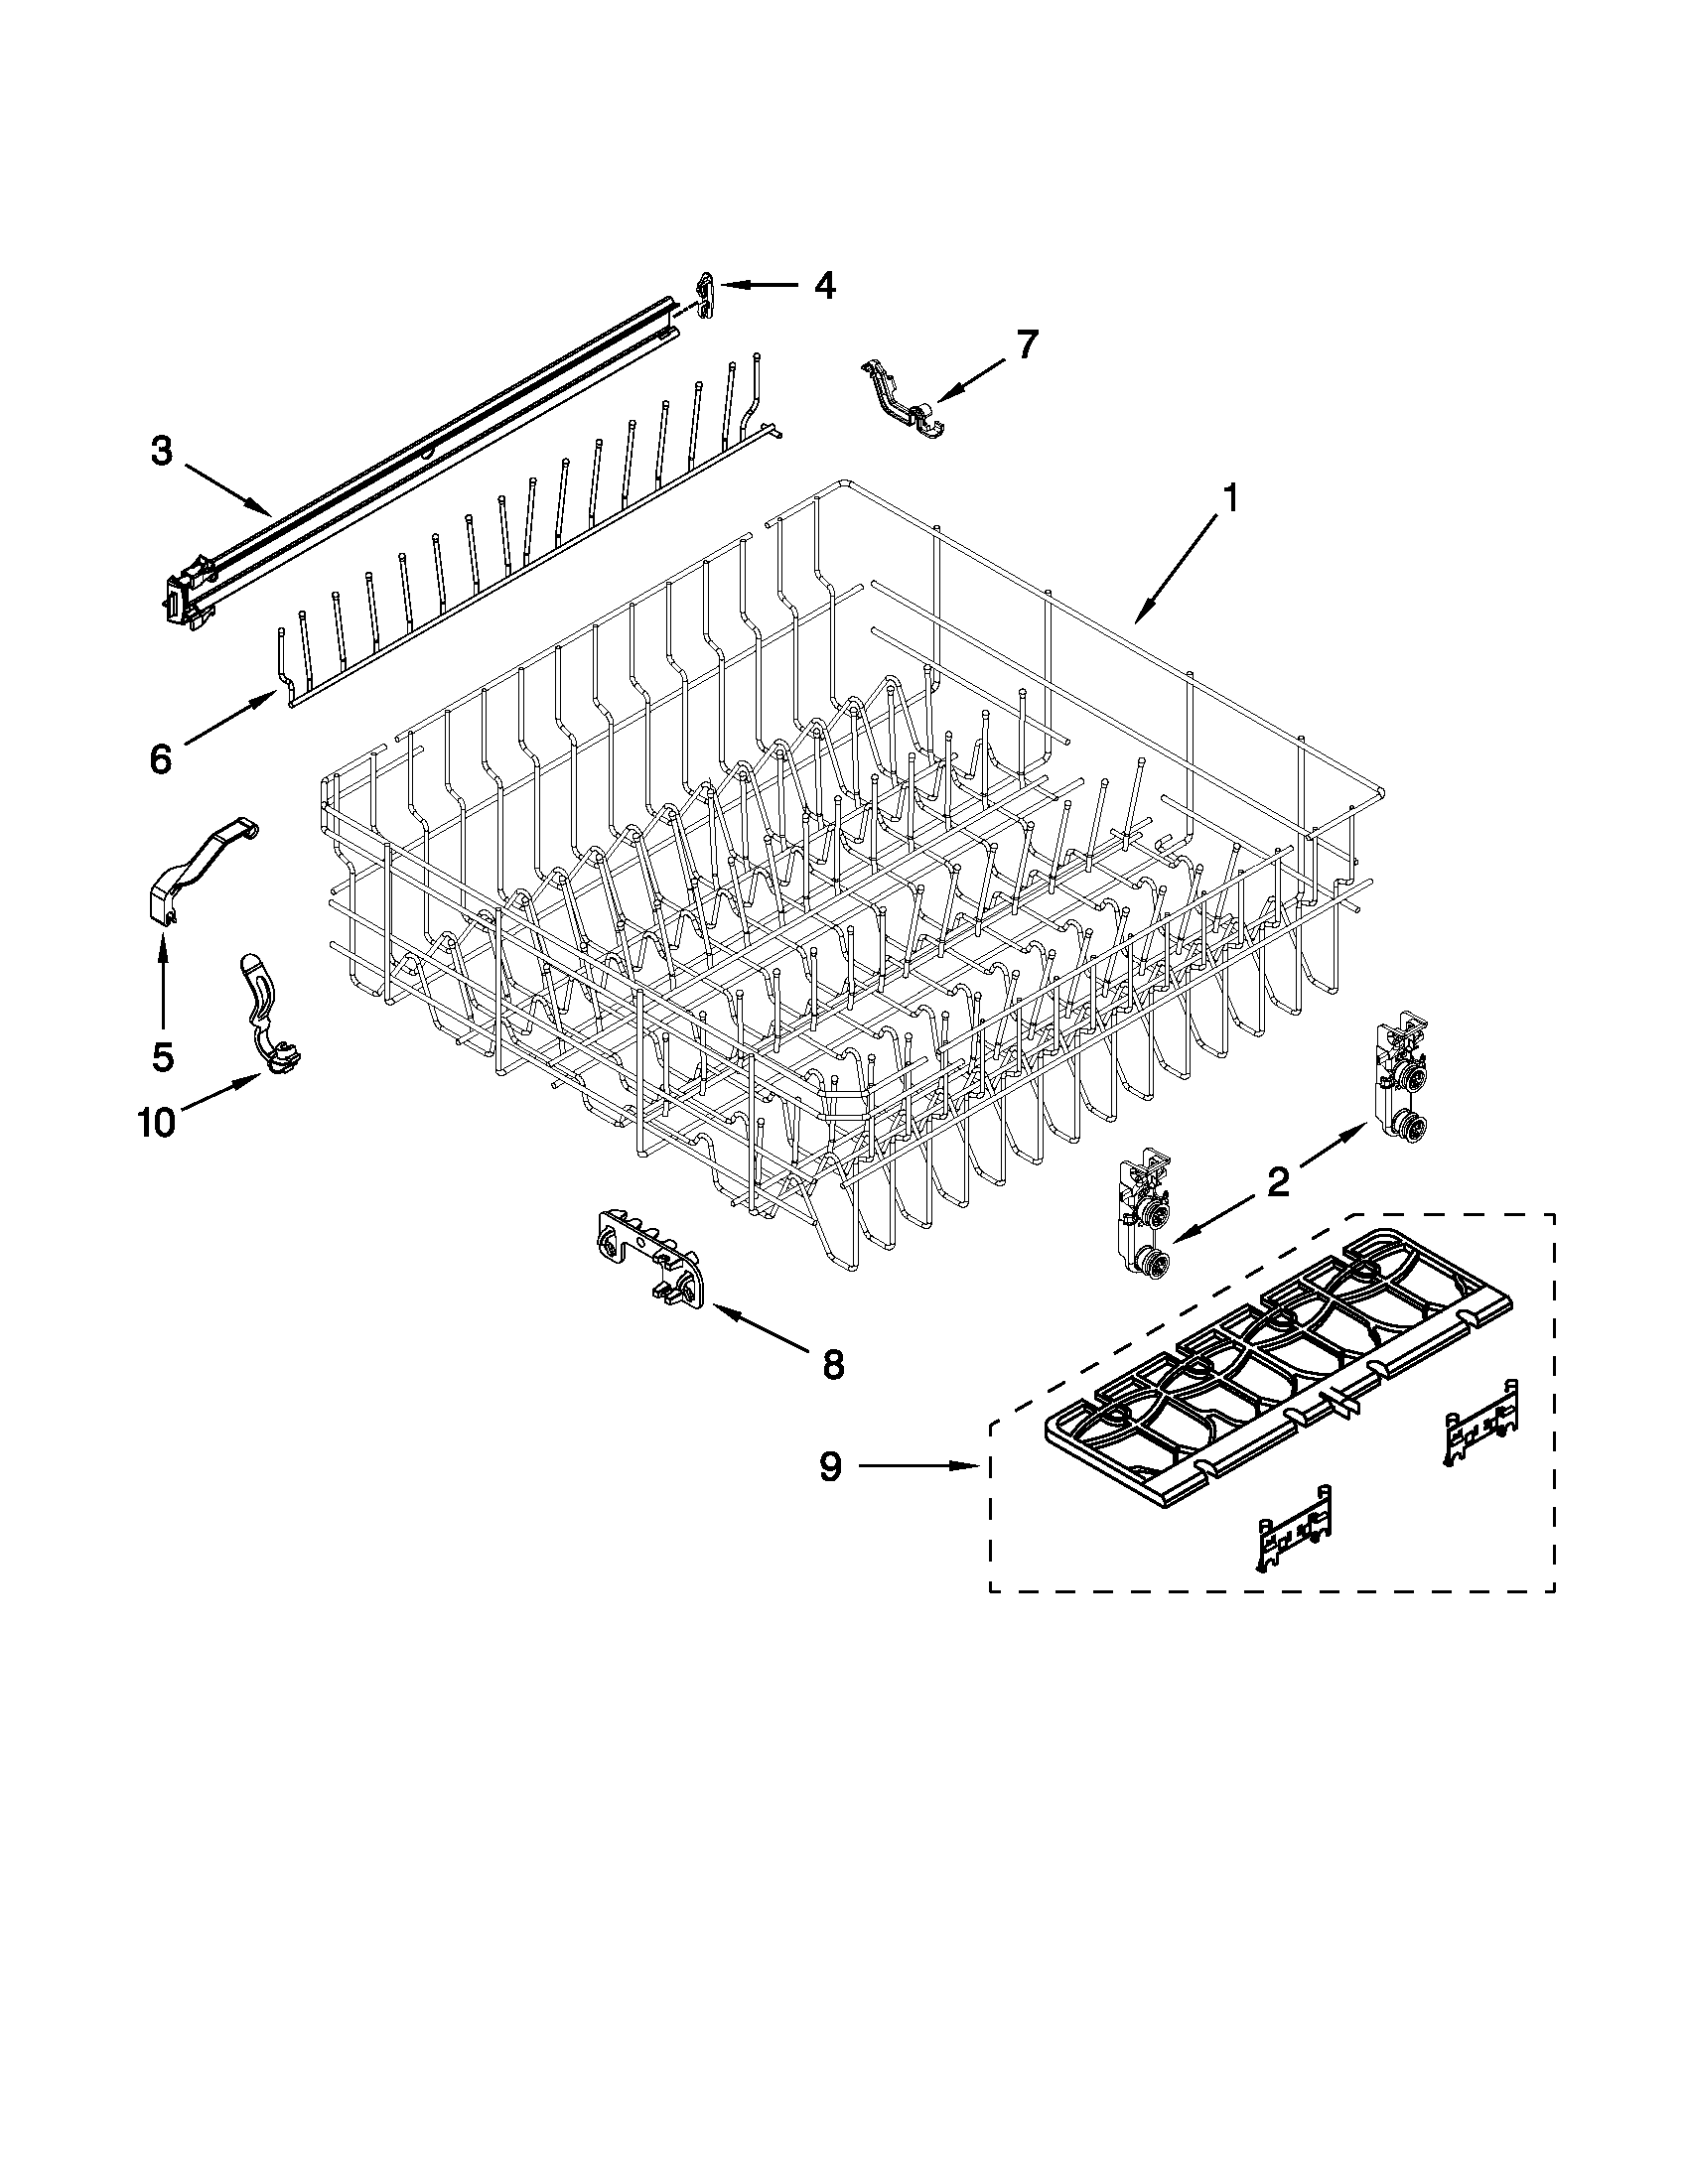 Whirlpool WDF730PAYB2 upper rack and track parts diagram